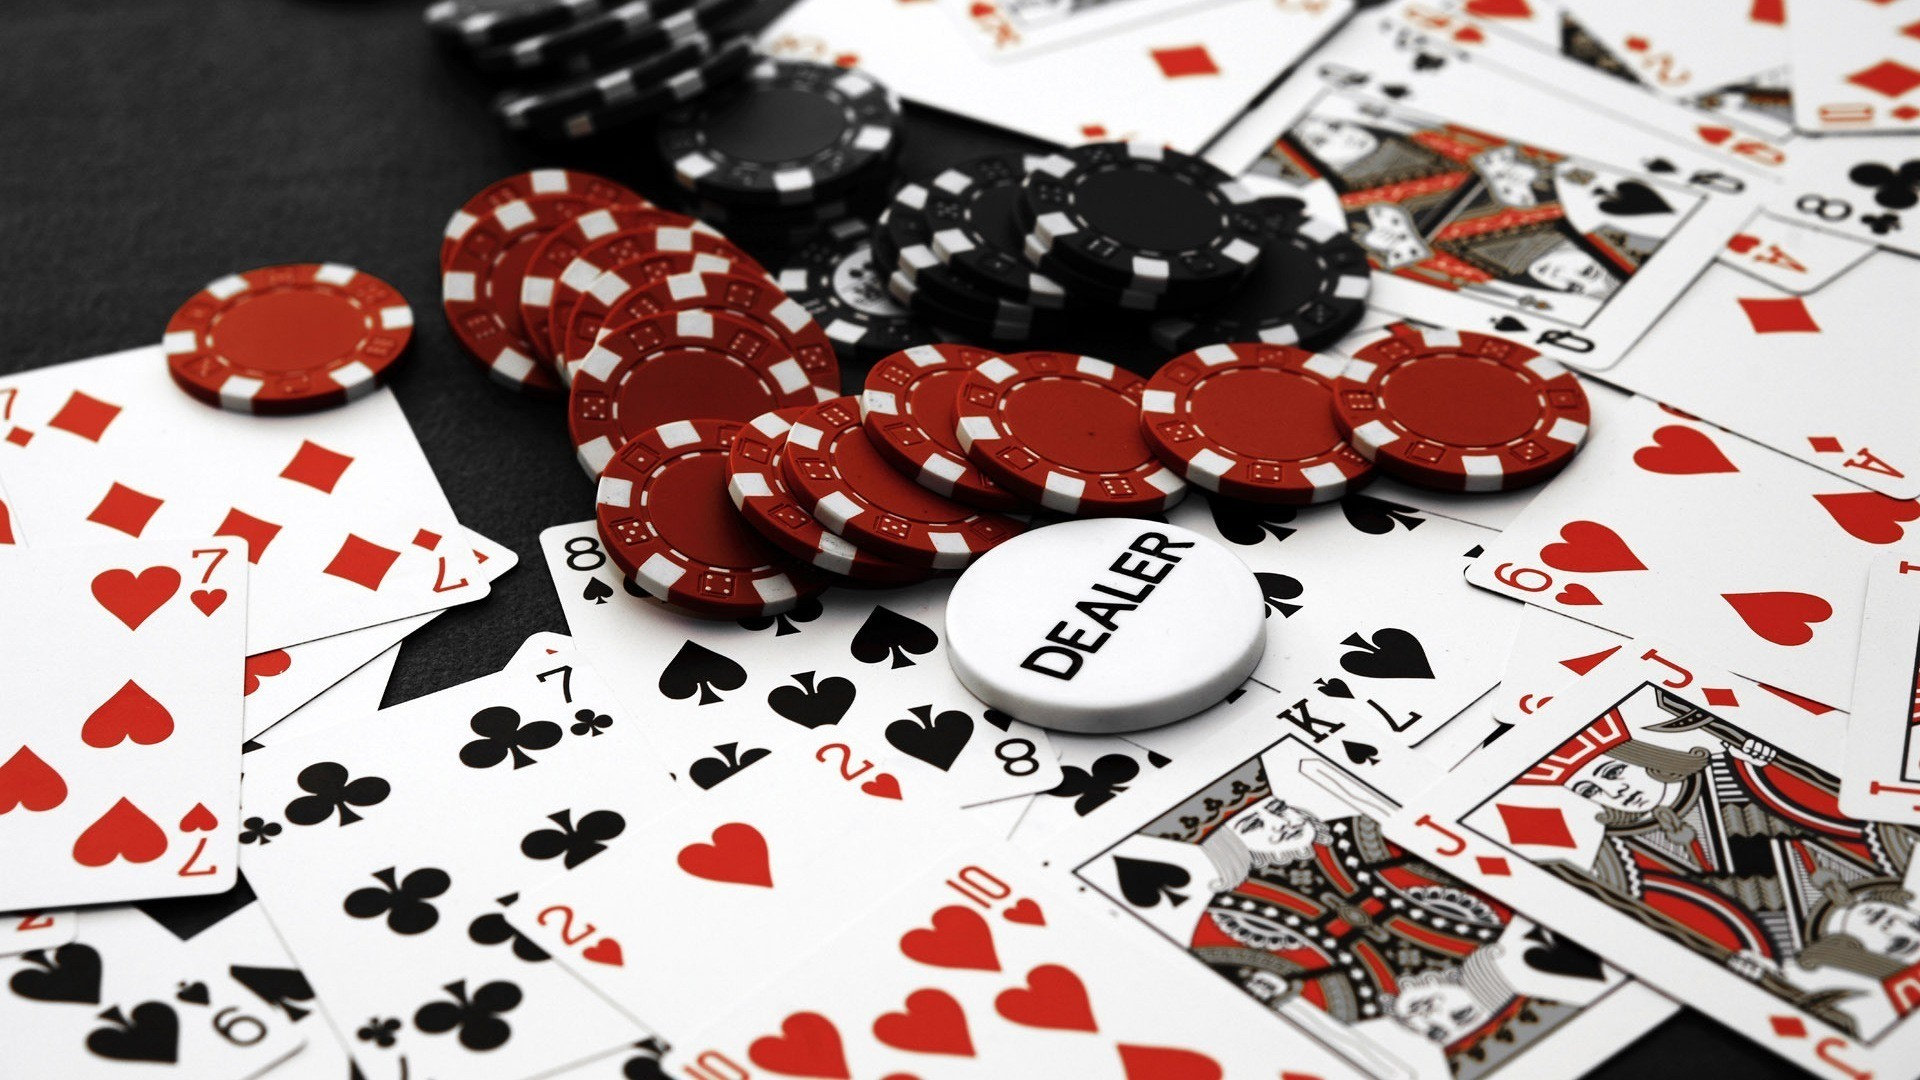 Res: 1920x1080, 43 Poker HD Wallpapers Backgrounds Wallpaper Abyss - HD Wallpapers